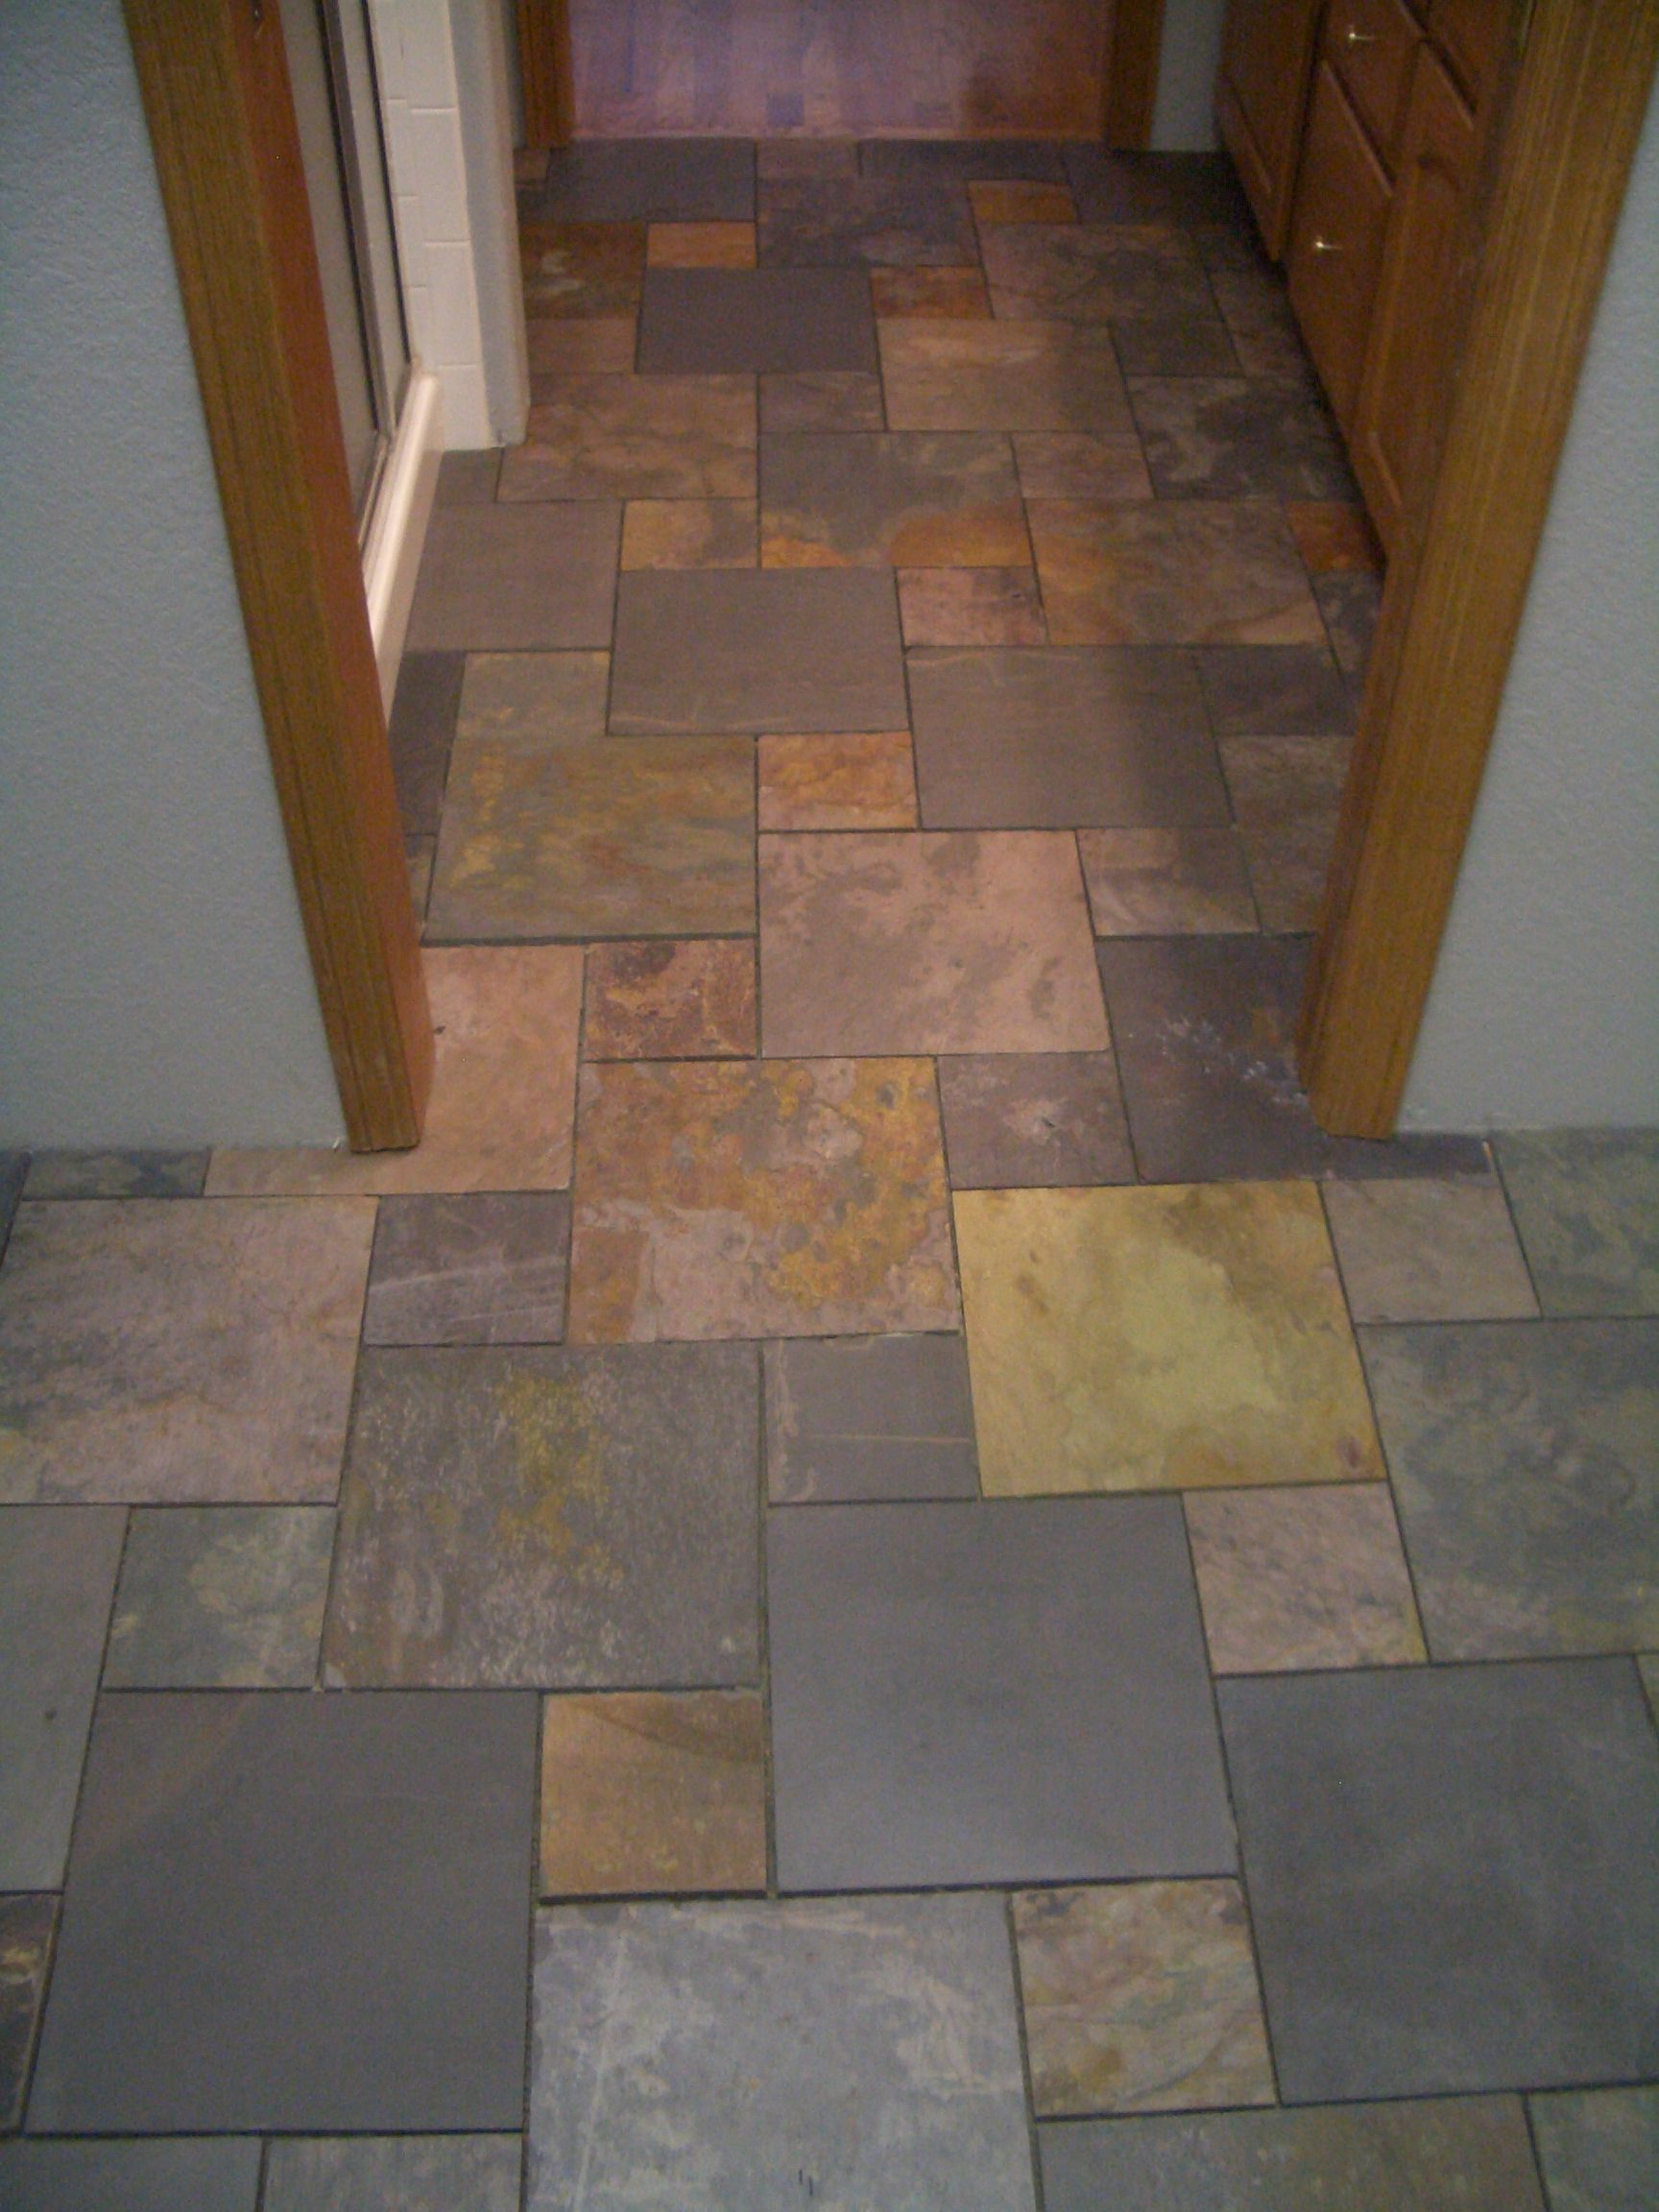 Bathroom floor tile ideas recently finished a bathroom laundry tile art a fort collins co tile and stone contractor posts photos and a description of a slate bathroom floor installed with a pinwheel pattern dailygadgetfo Image collections